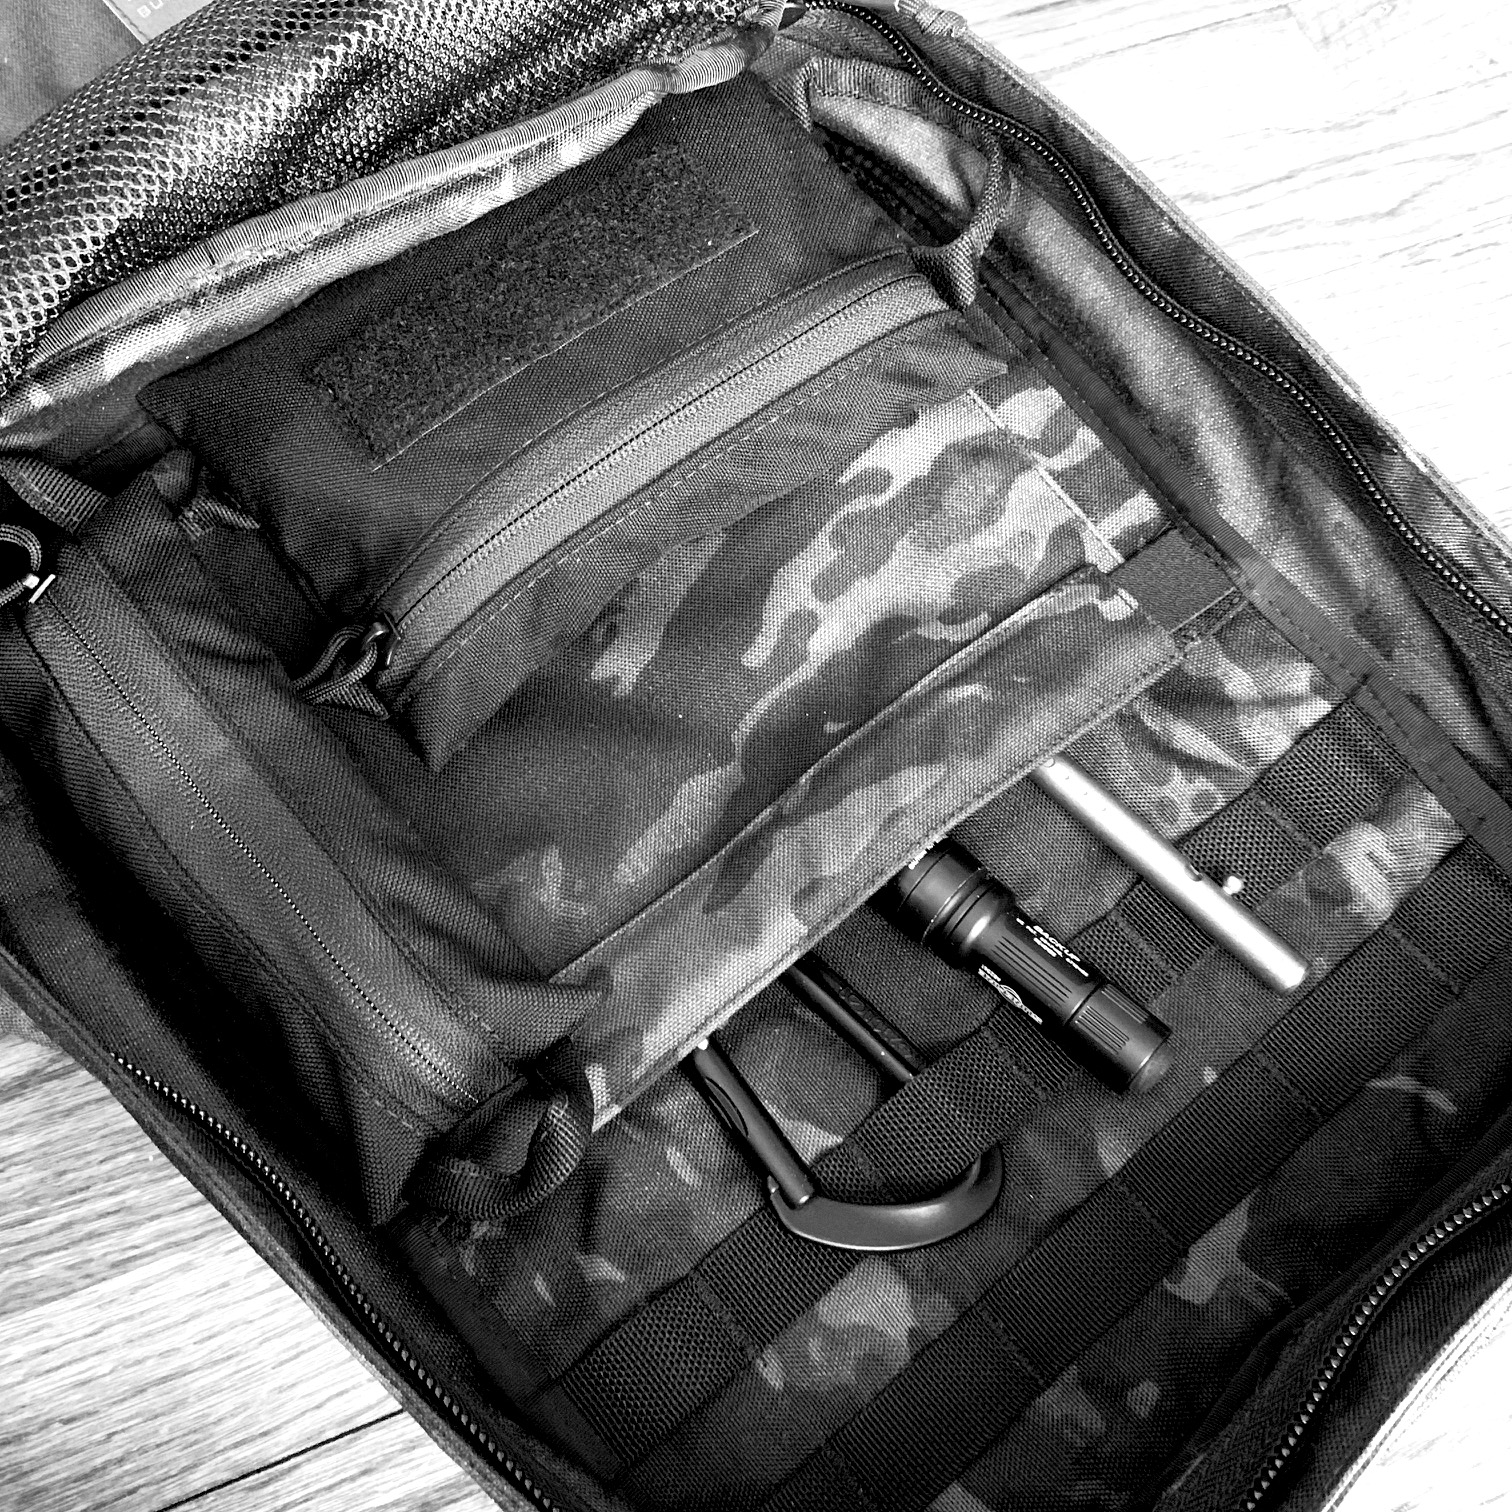 The Skinny and Standard pouches on the main compartment of the GORUCK Echo